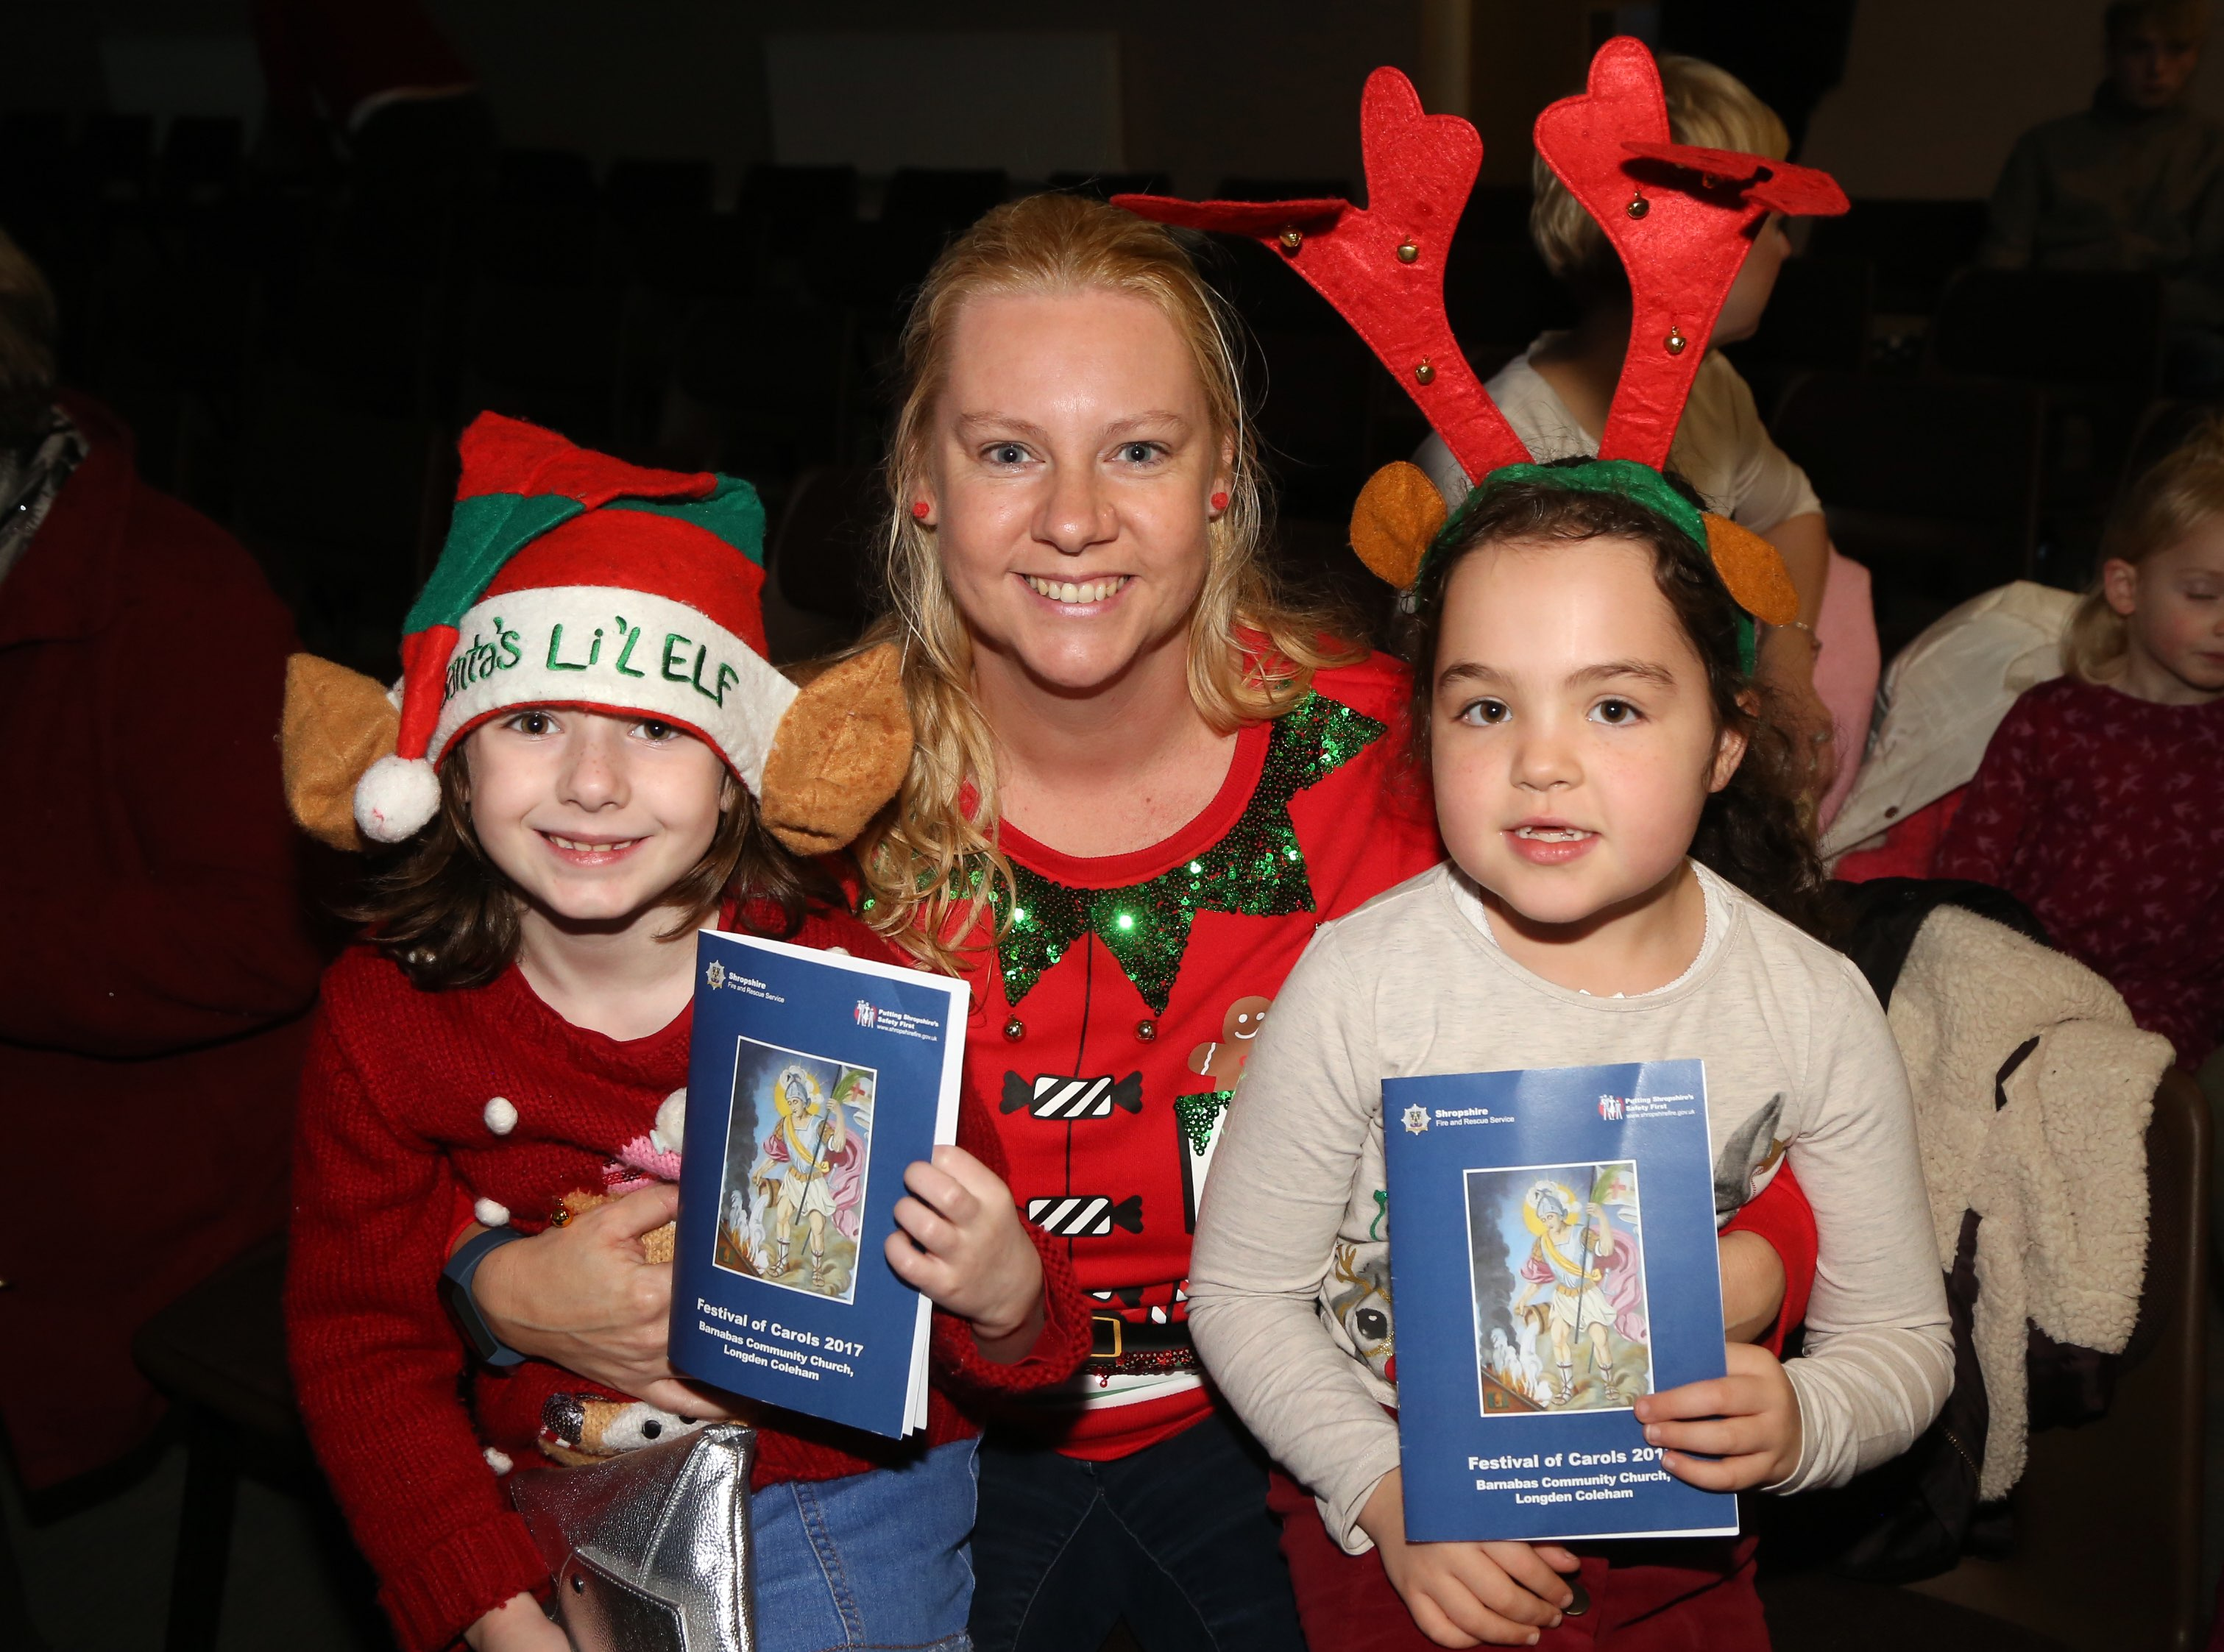 Fun for little ones at Shropshire Fire and Rescue Service's Festival of Carols